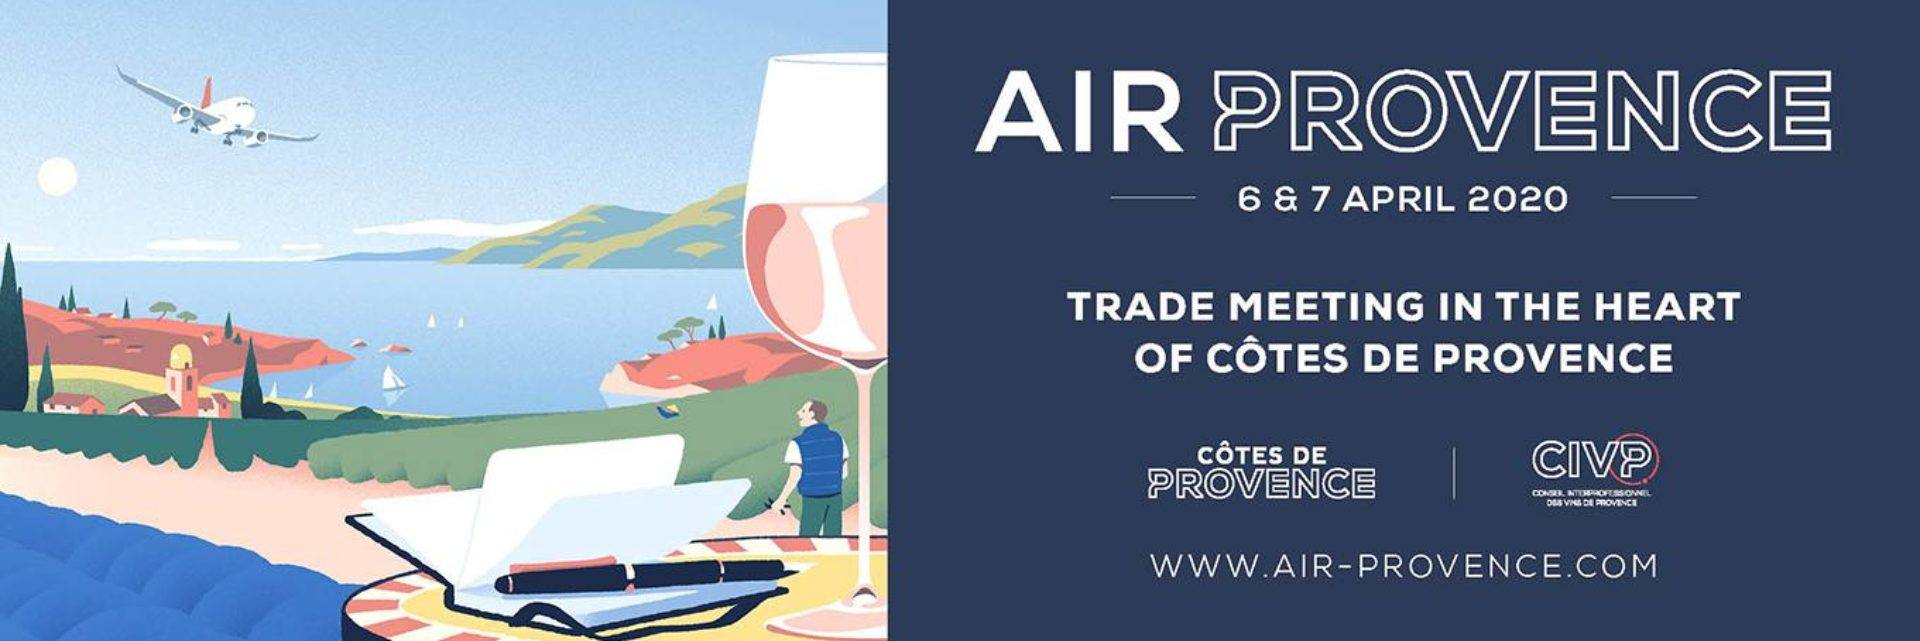 AIR PROVENCE, wine trade meeting